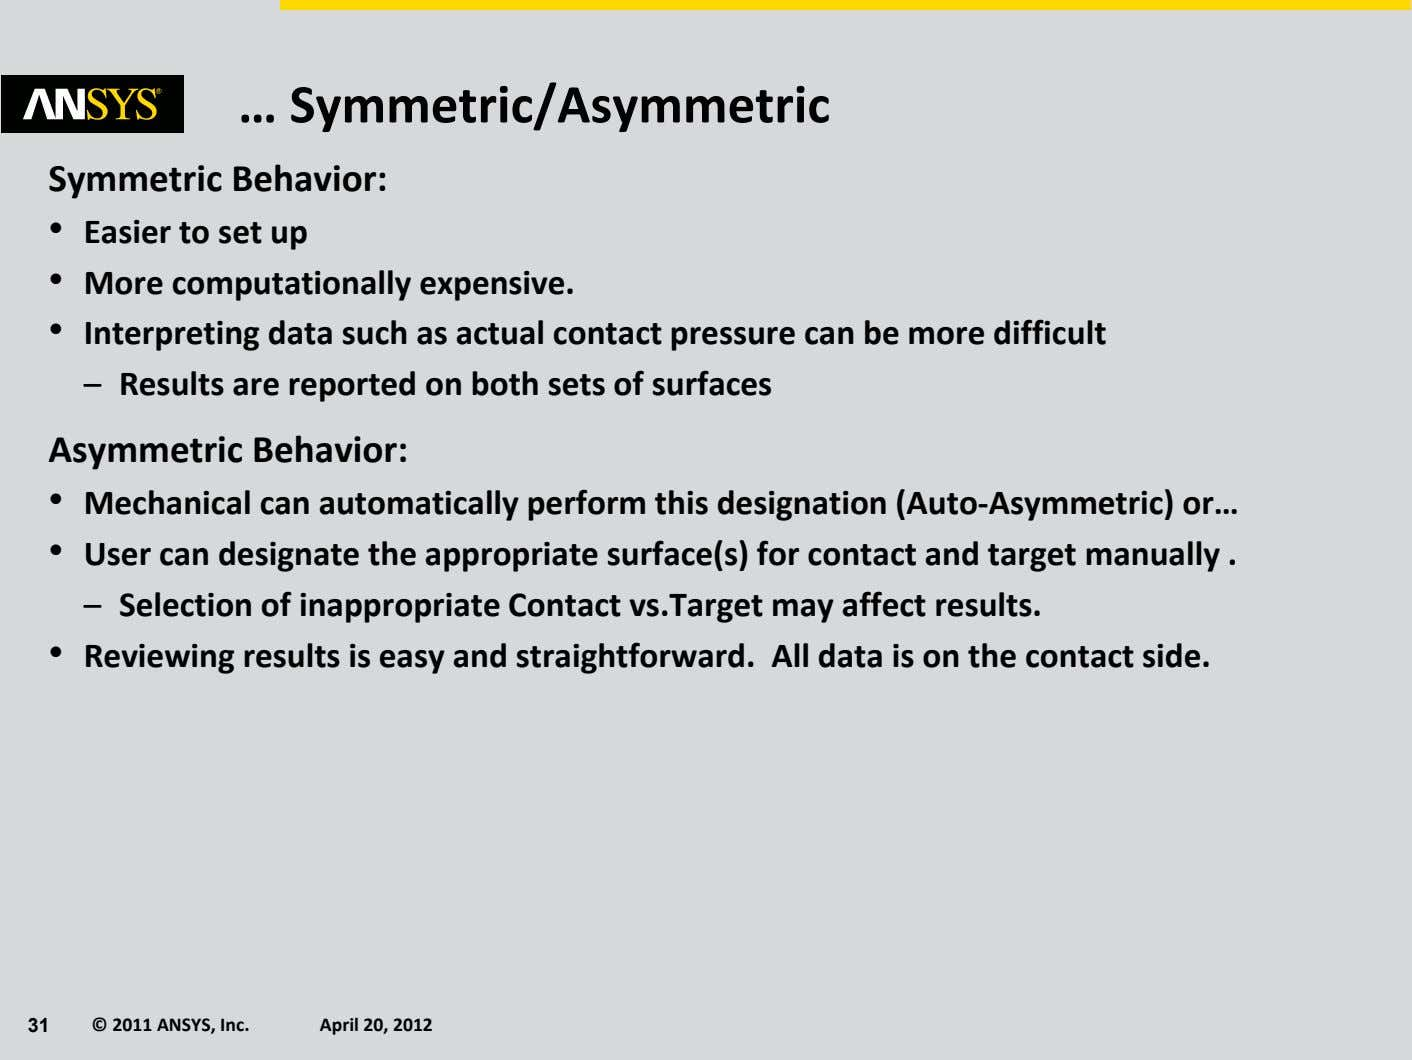 … Symmetric/Asymmetric Symmetric Behavior: • Easier to set up • More computationally expensive. • Interpreting